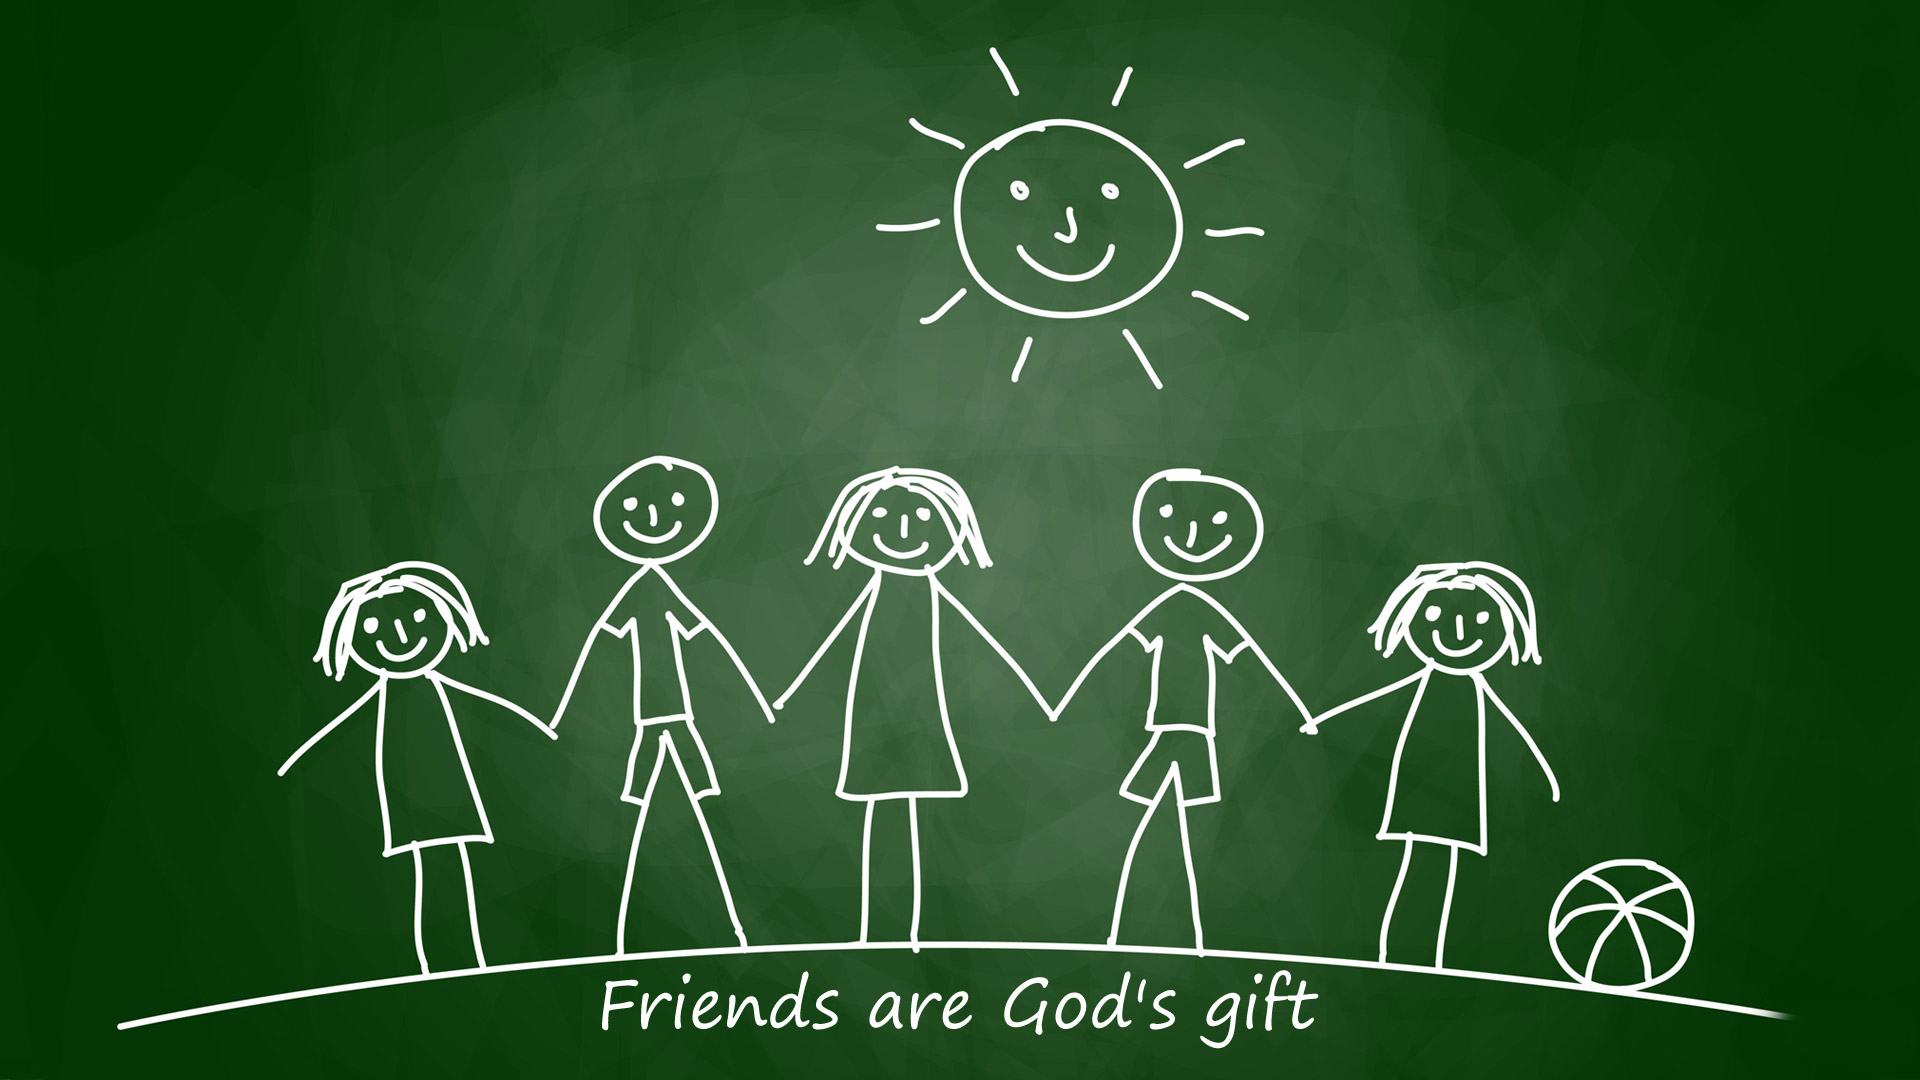 Friendship day 2014 wallpaper wallpaper high definition high friendship day 2014 wallpaper altavistaventures Image collections